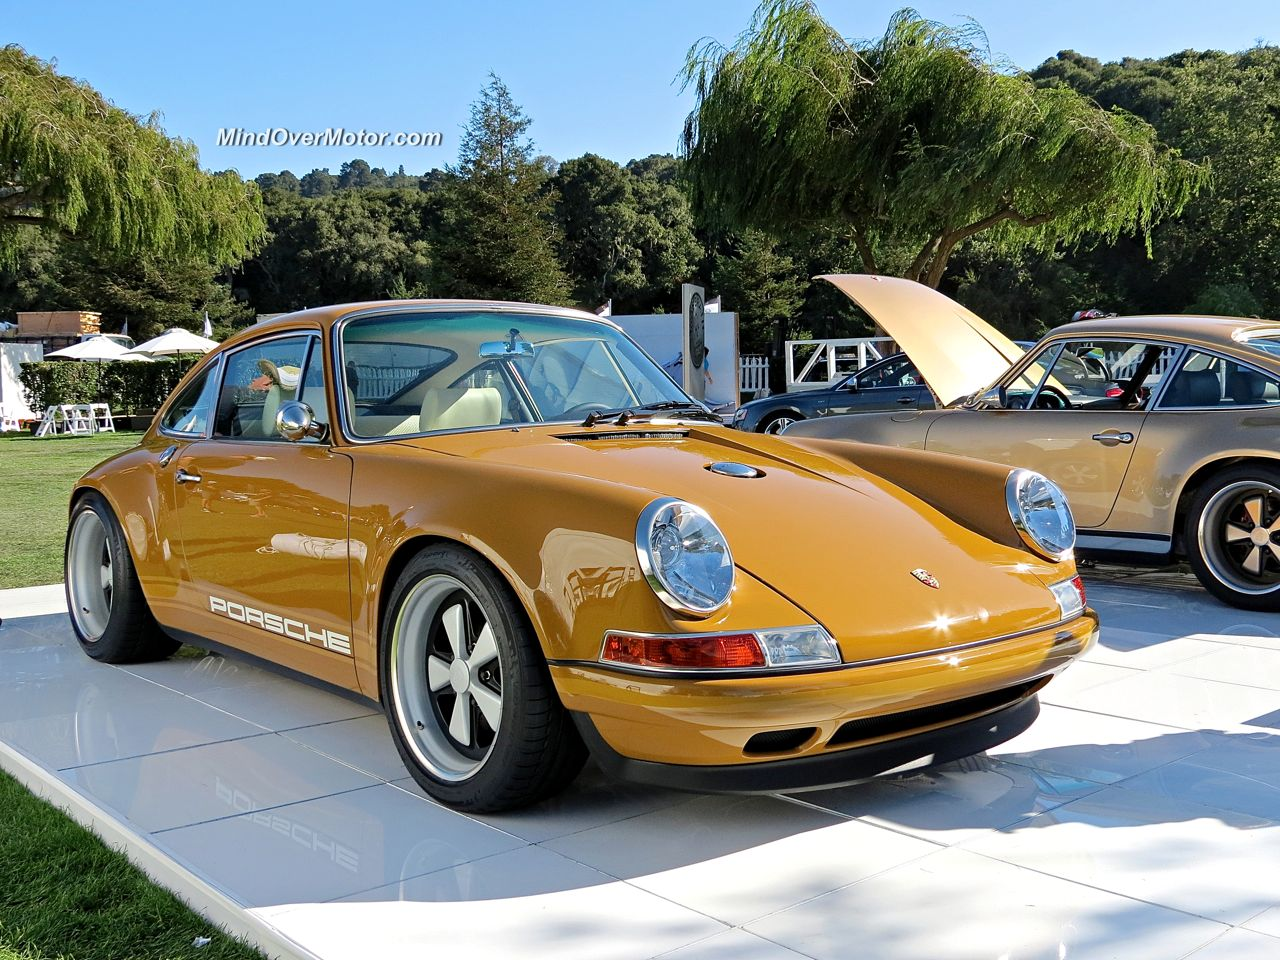 Singer 911 at the Quail Lodge